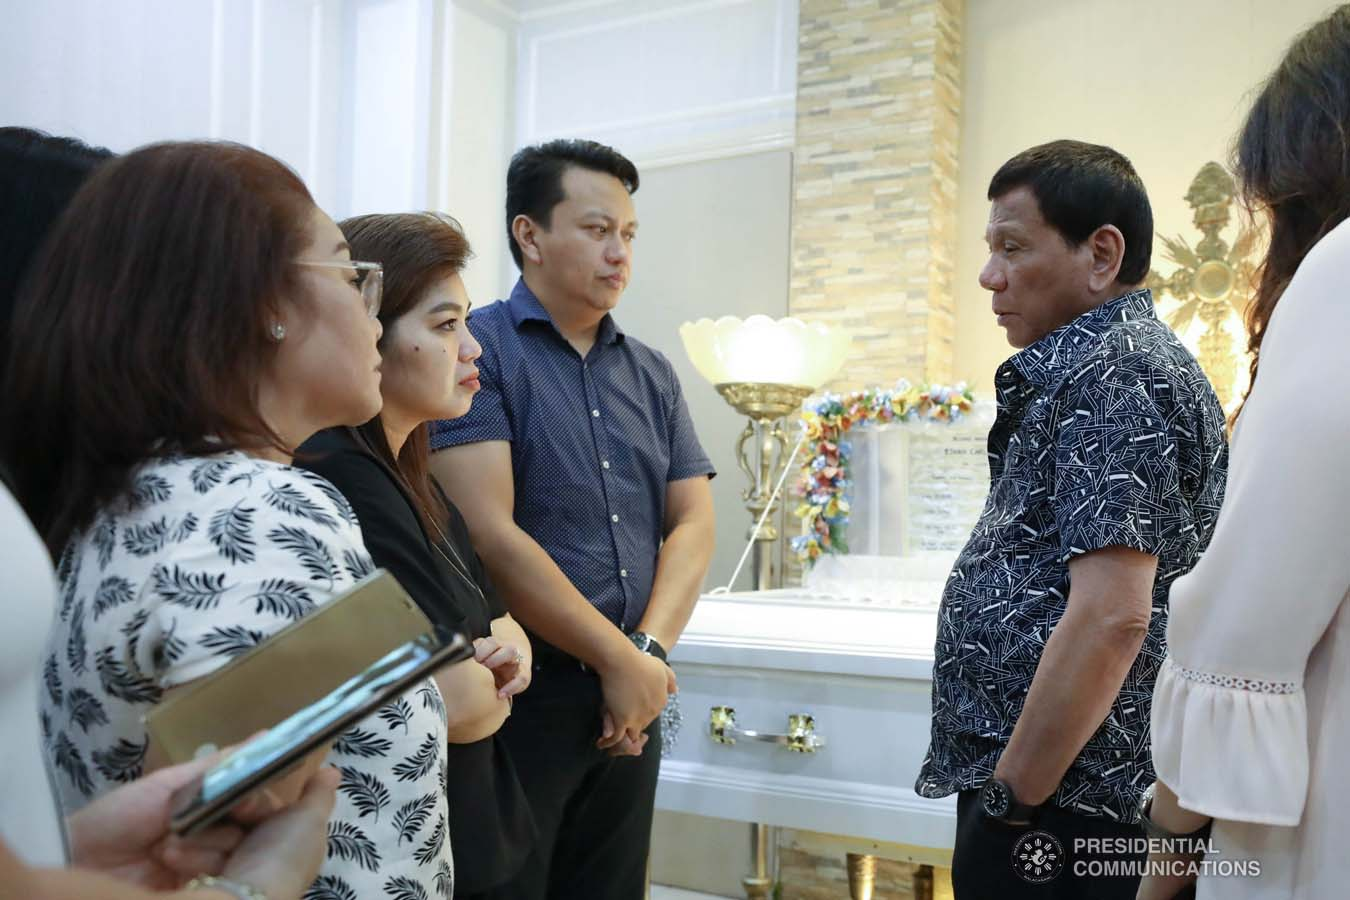 President Rodrigo Roa Duterte condoles with the family of Ethan Dabi as he visits the wake at the Cosmopolitan Funeral Homes in Davao City on September 26, 2019. RICHARD MADELO/PRESIDENTIAL PHOTO